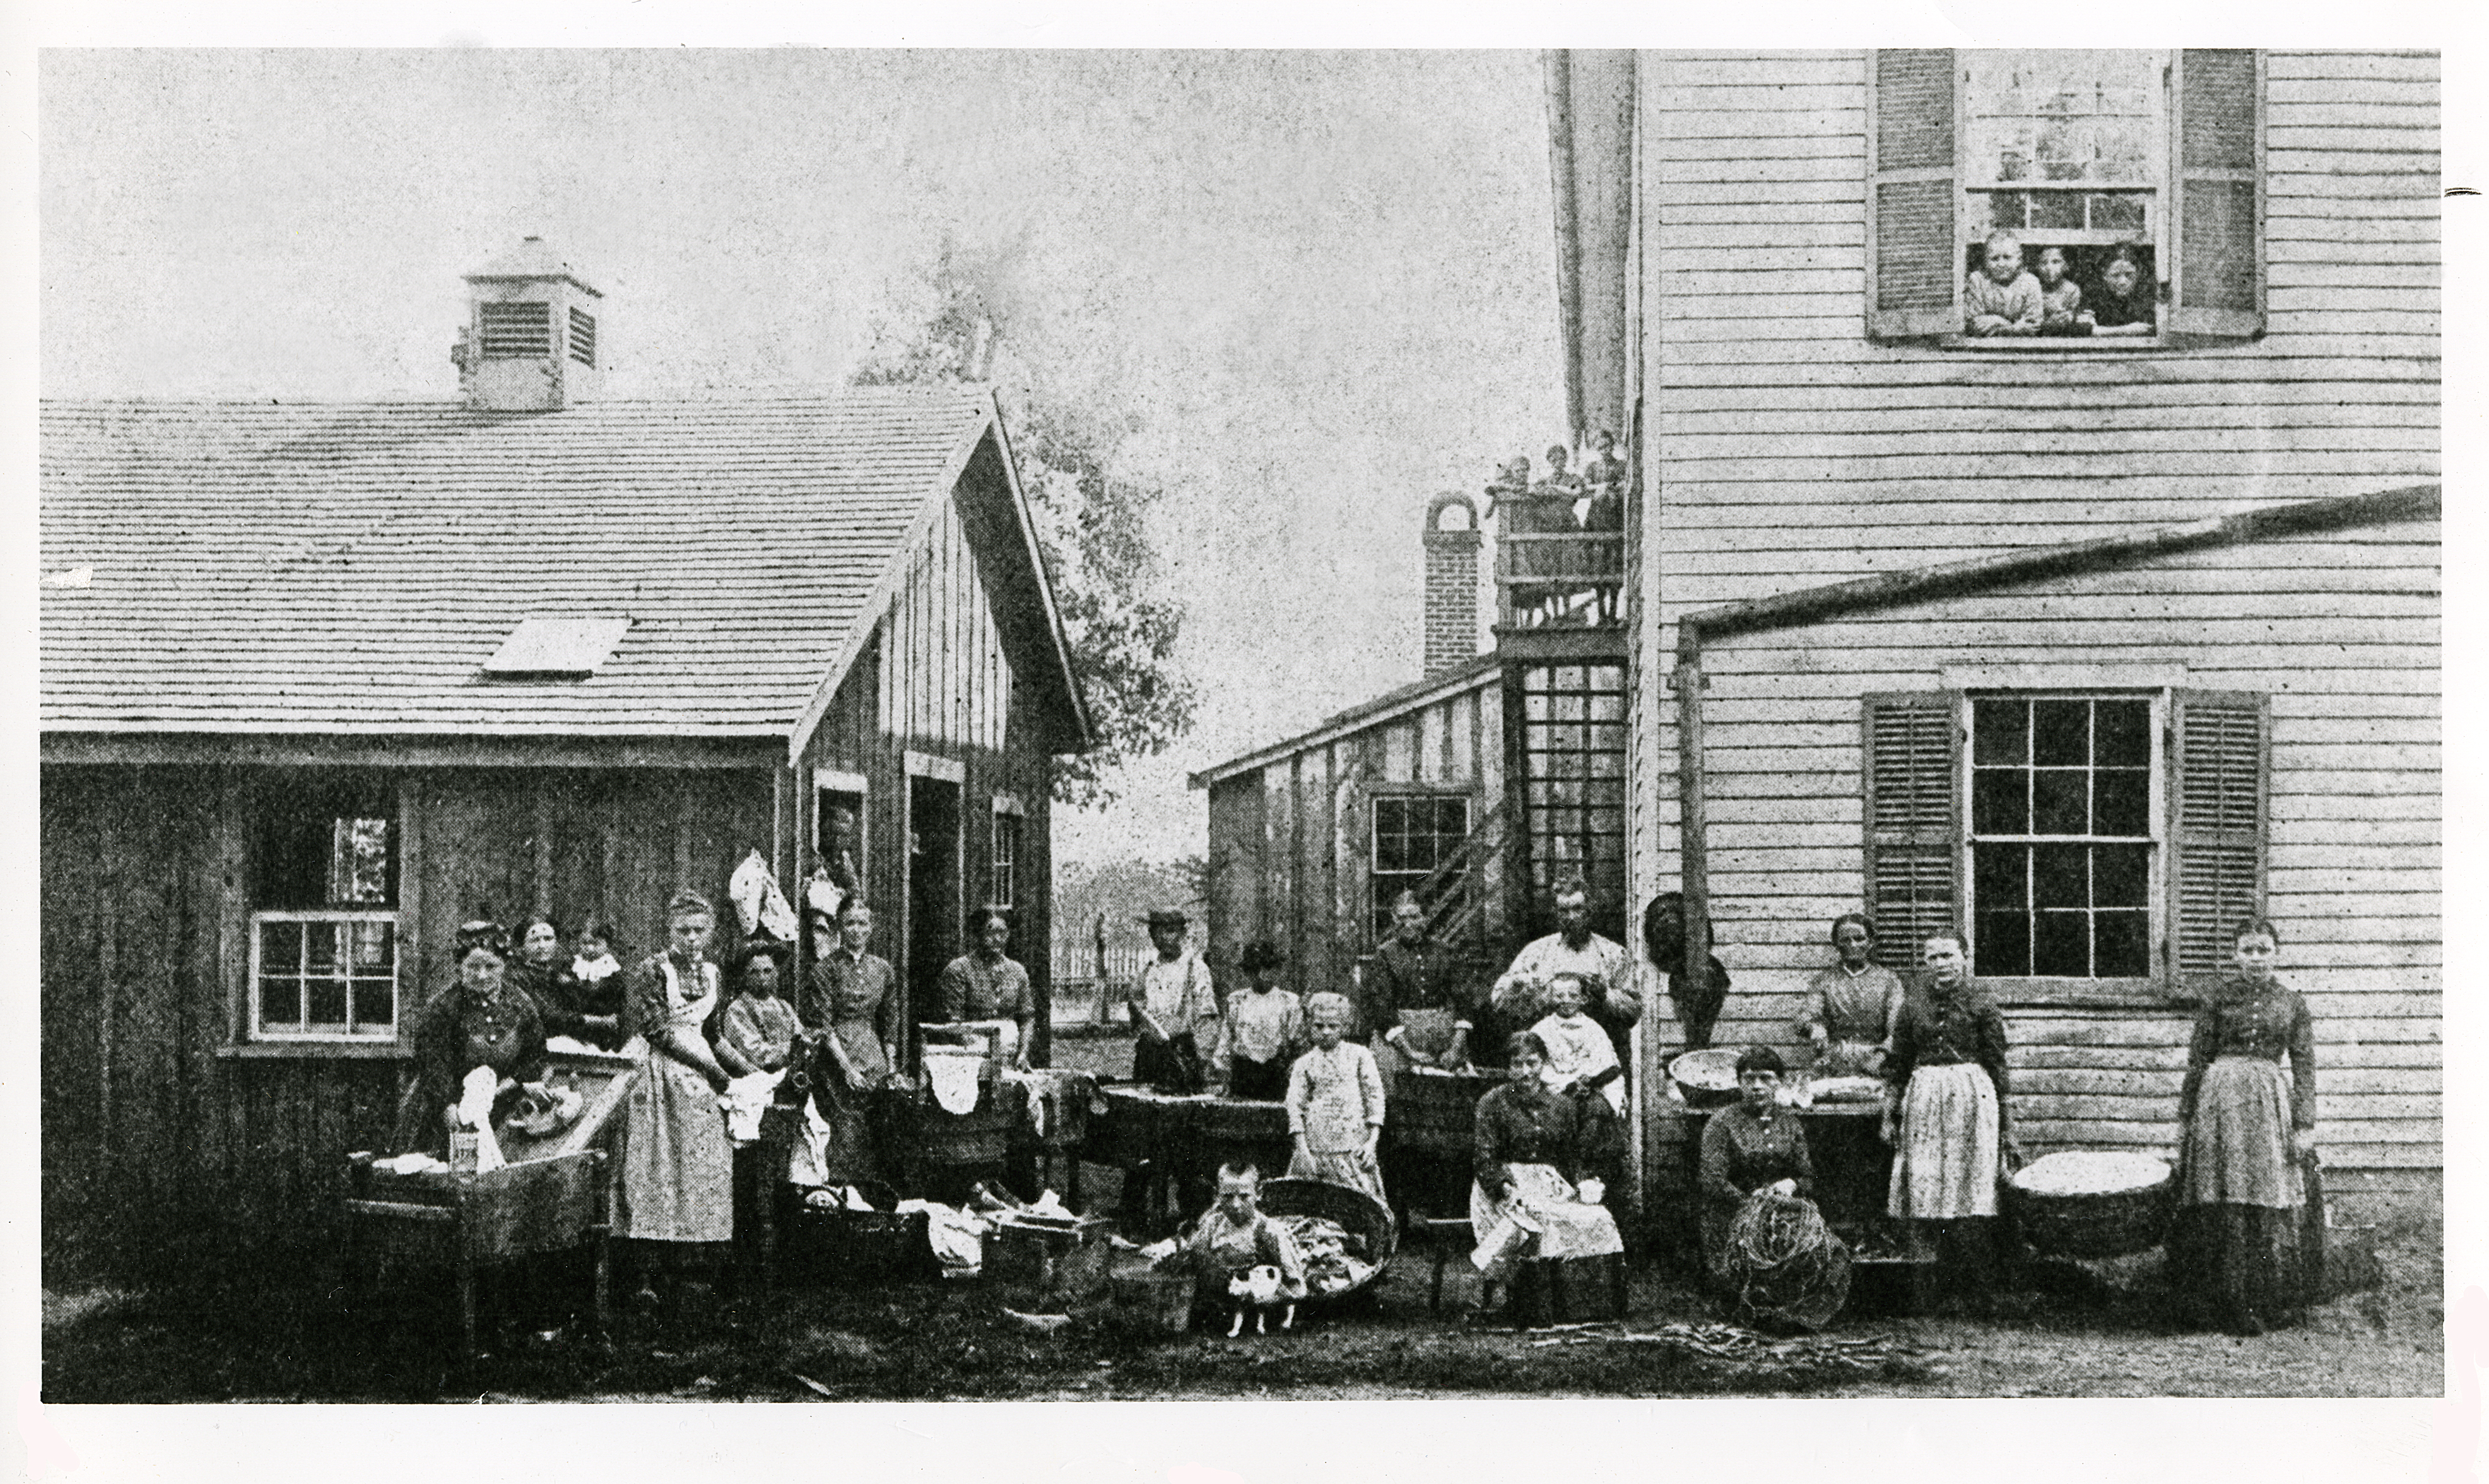 Laundry Day at Orphan Home 1870